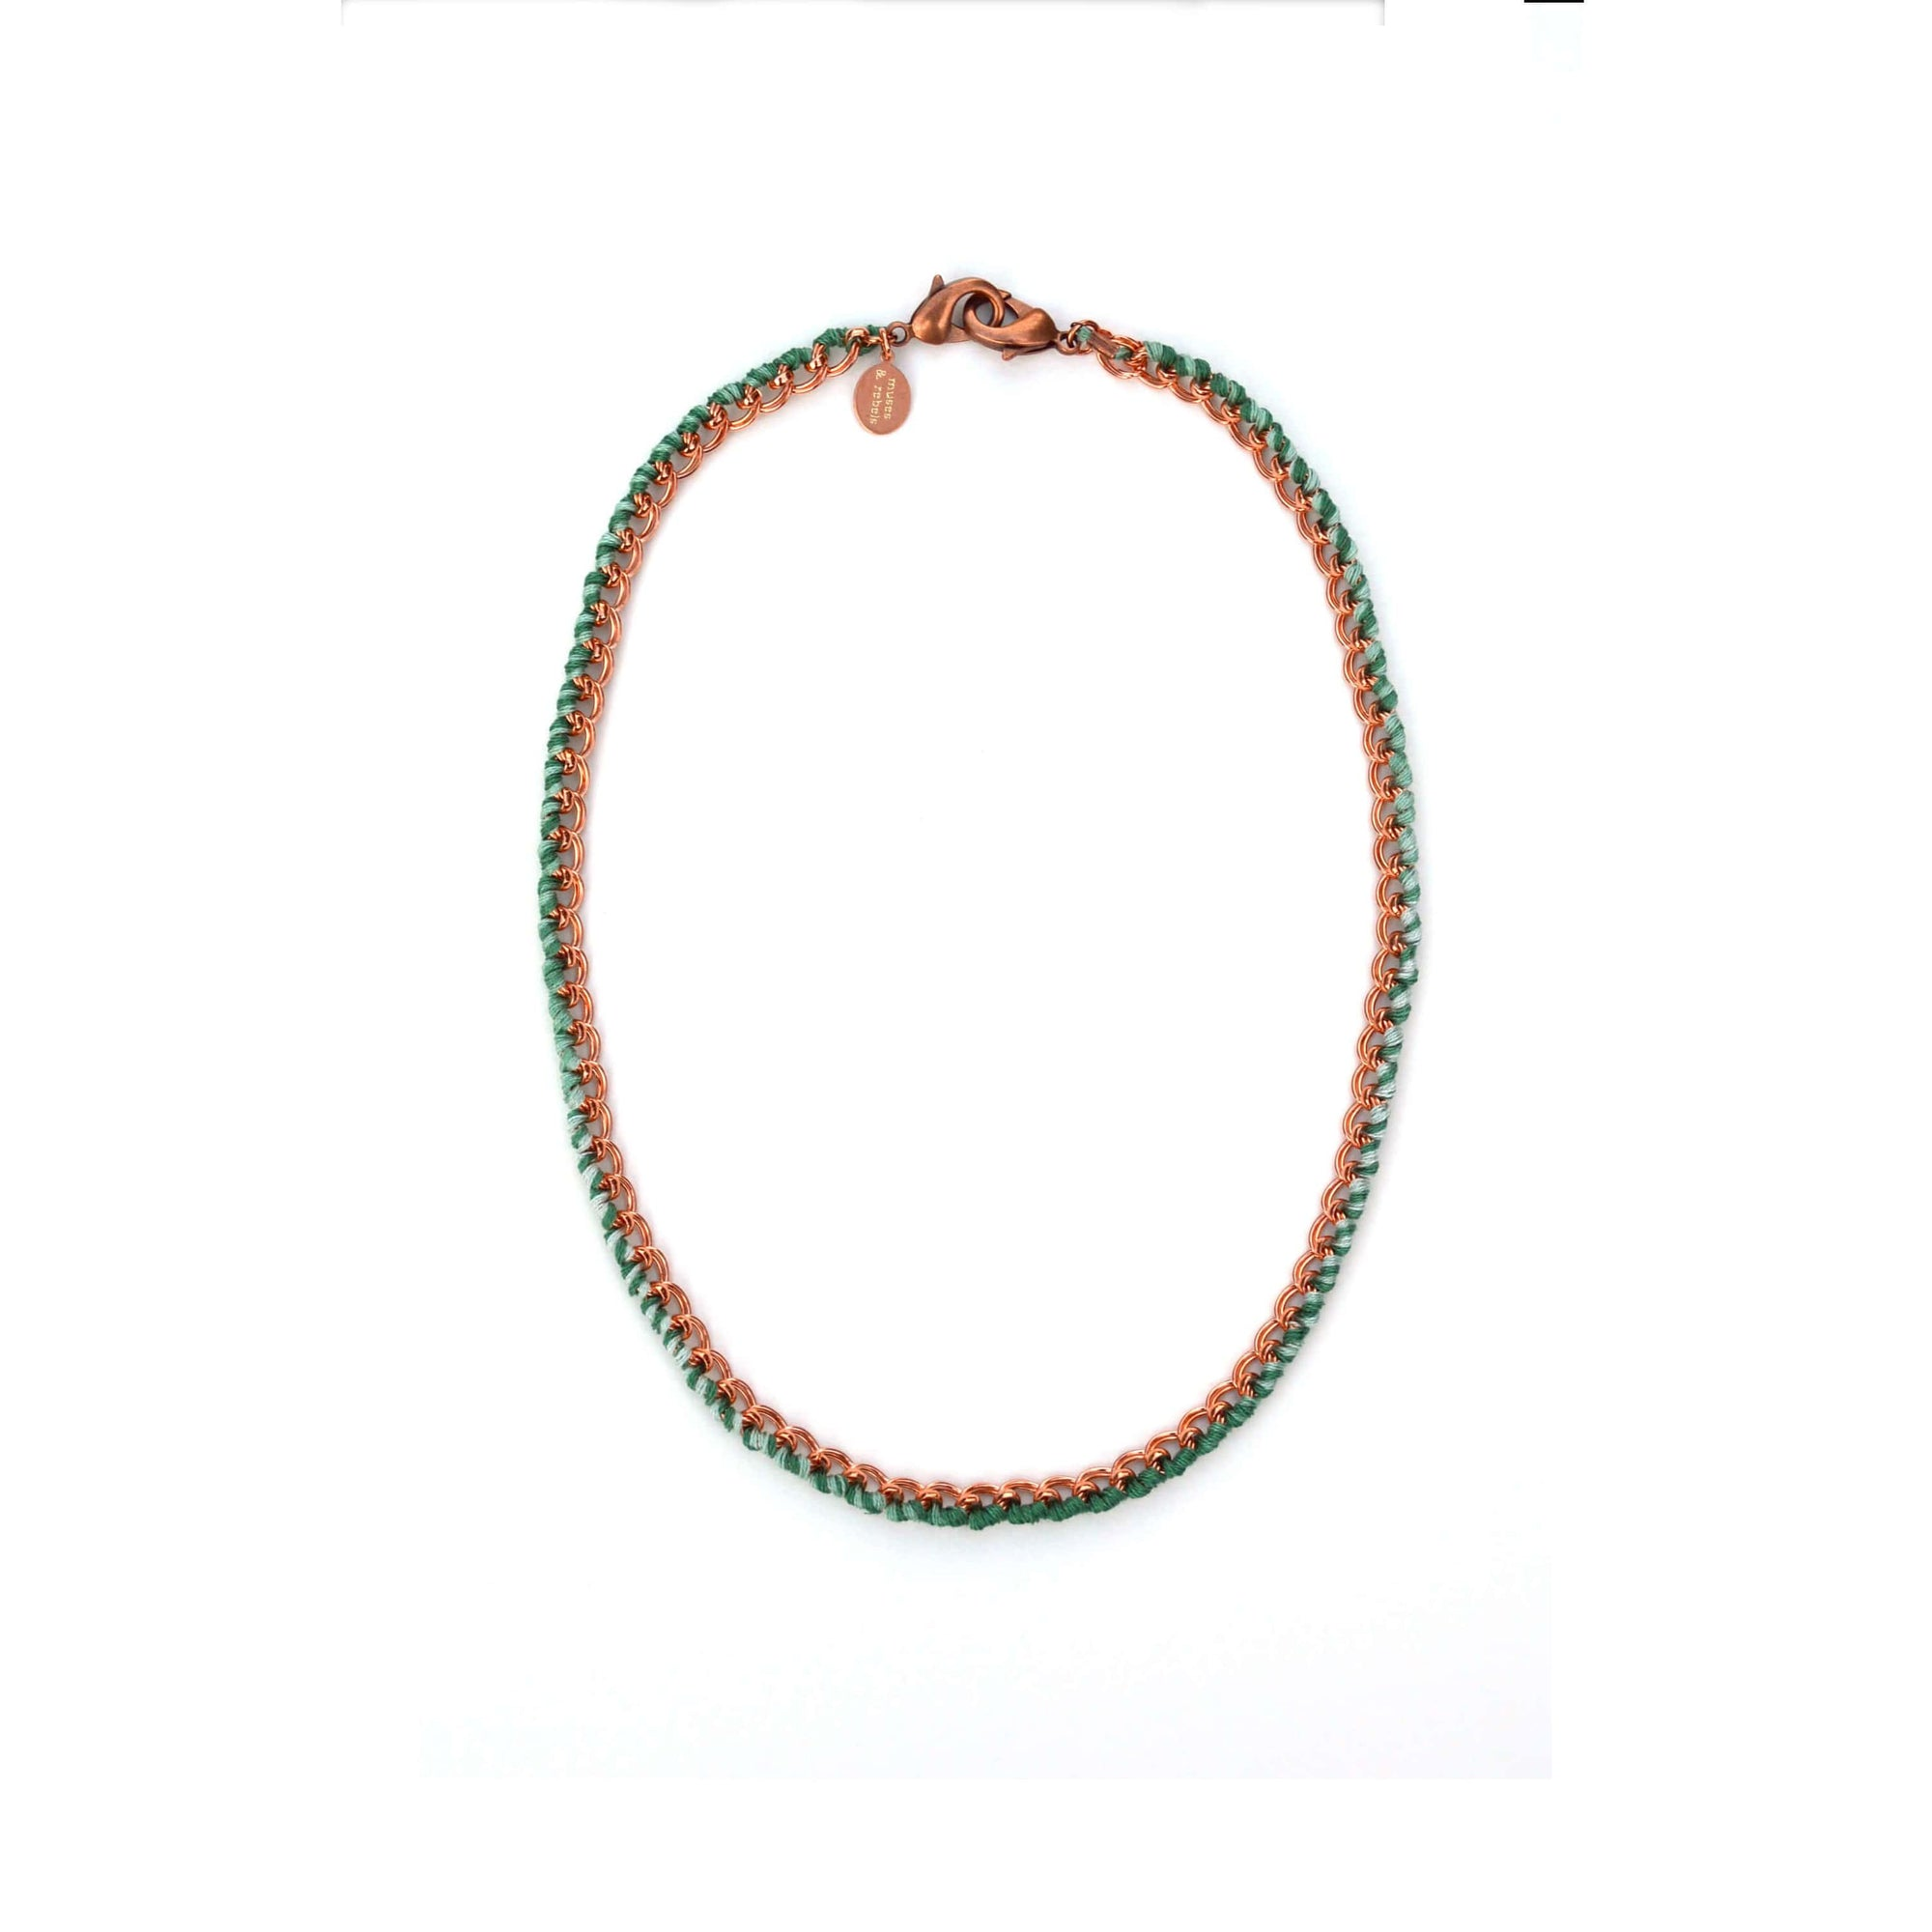 LOVE Links - mask chain - 3-in-1 Necklace + Bracelet + Mask Holder - Rose Gold Palm Ombré